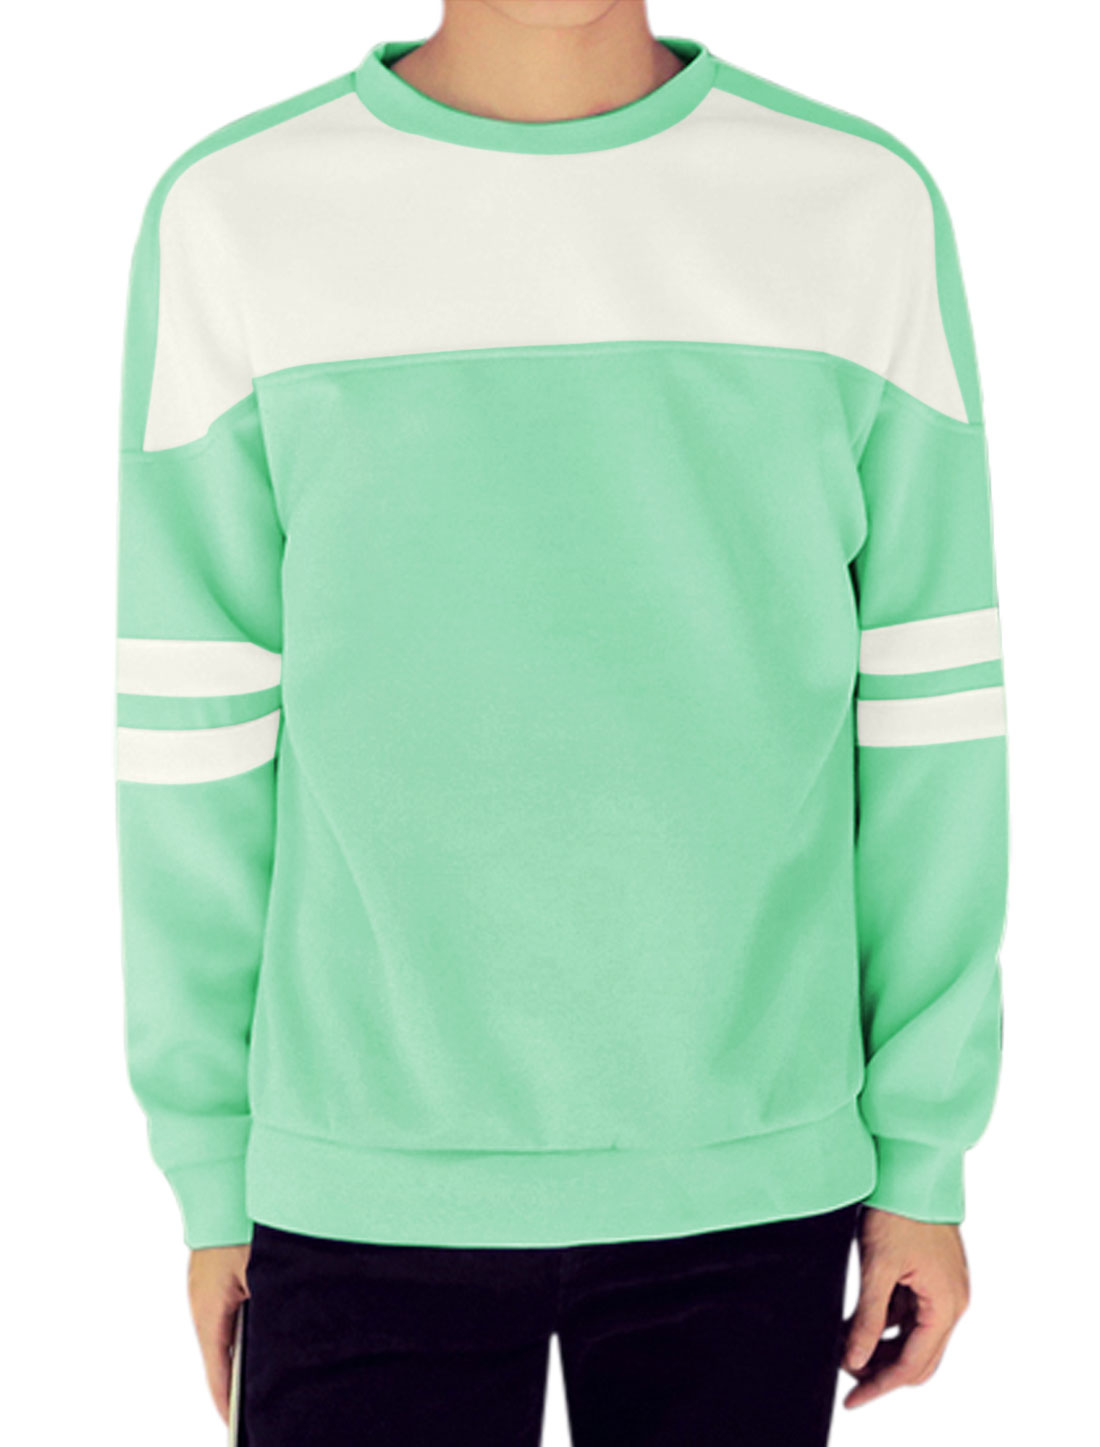 Men Contrast Color Varsity-Striped Long Sleeves Crew Neck Leisure Tops Green M